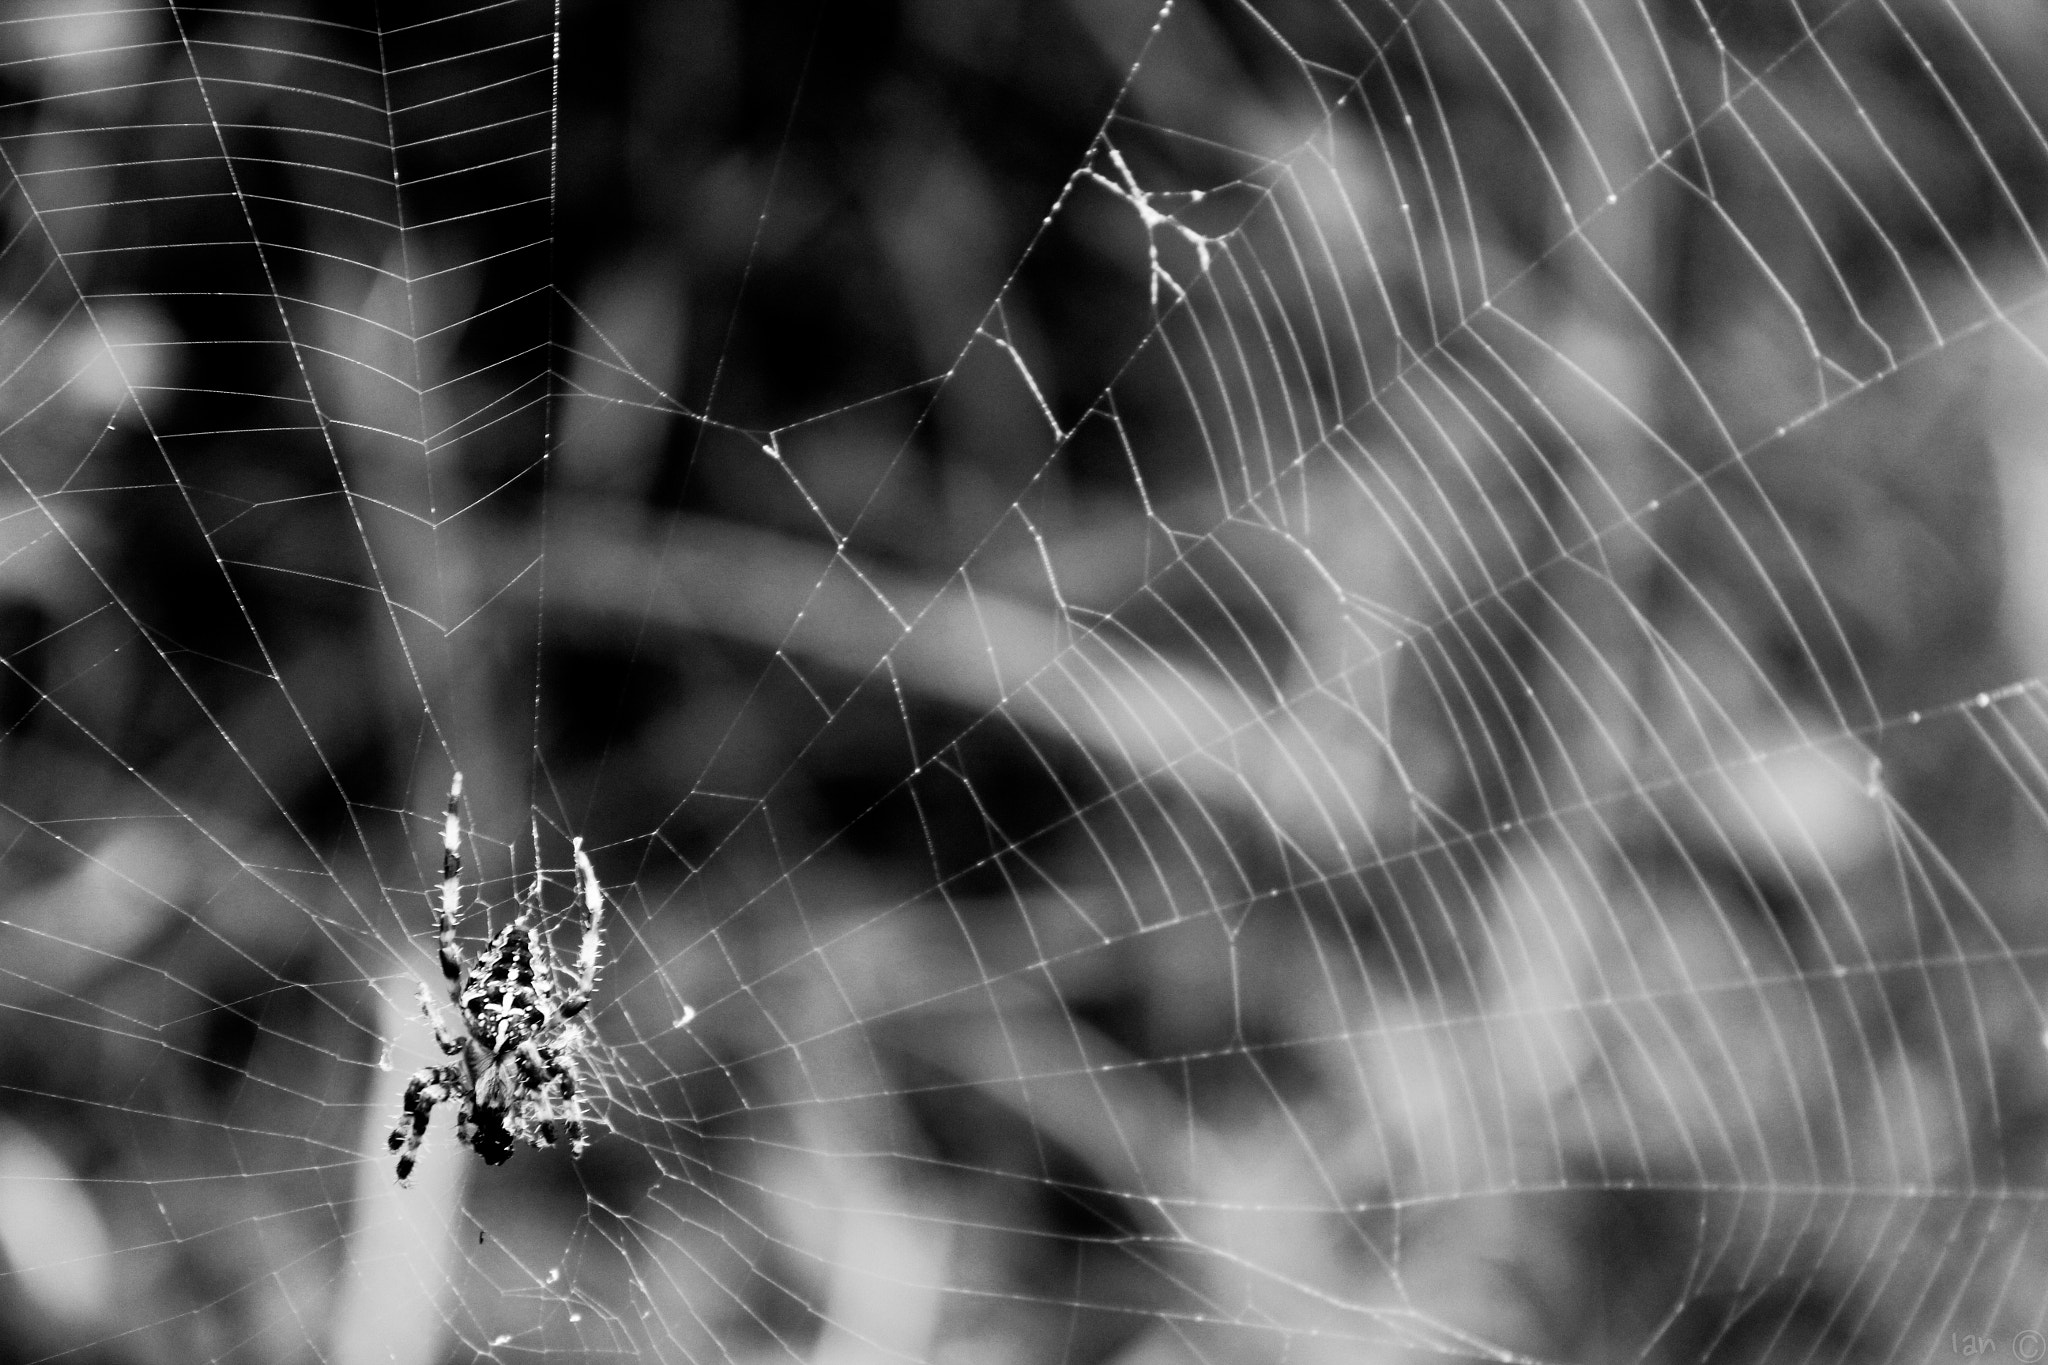 Photograph Spider by IAN C. on 500px